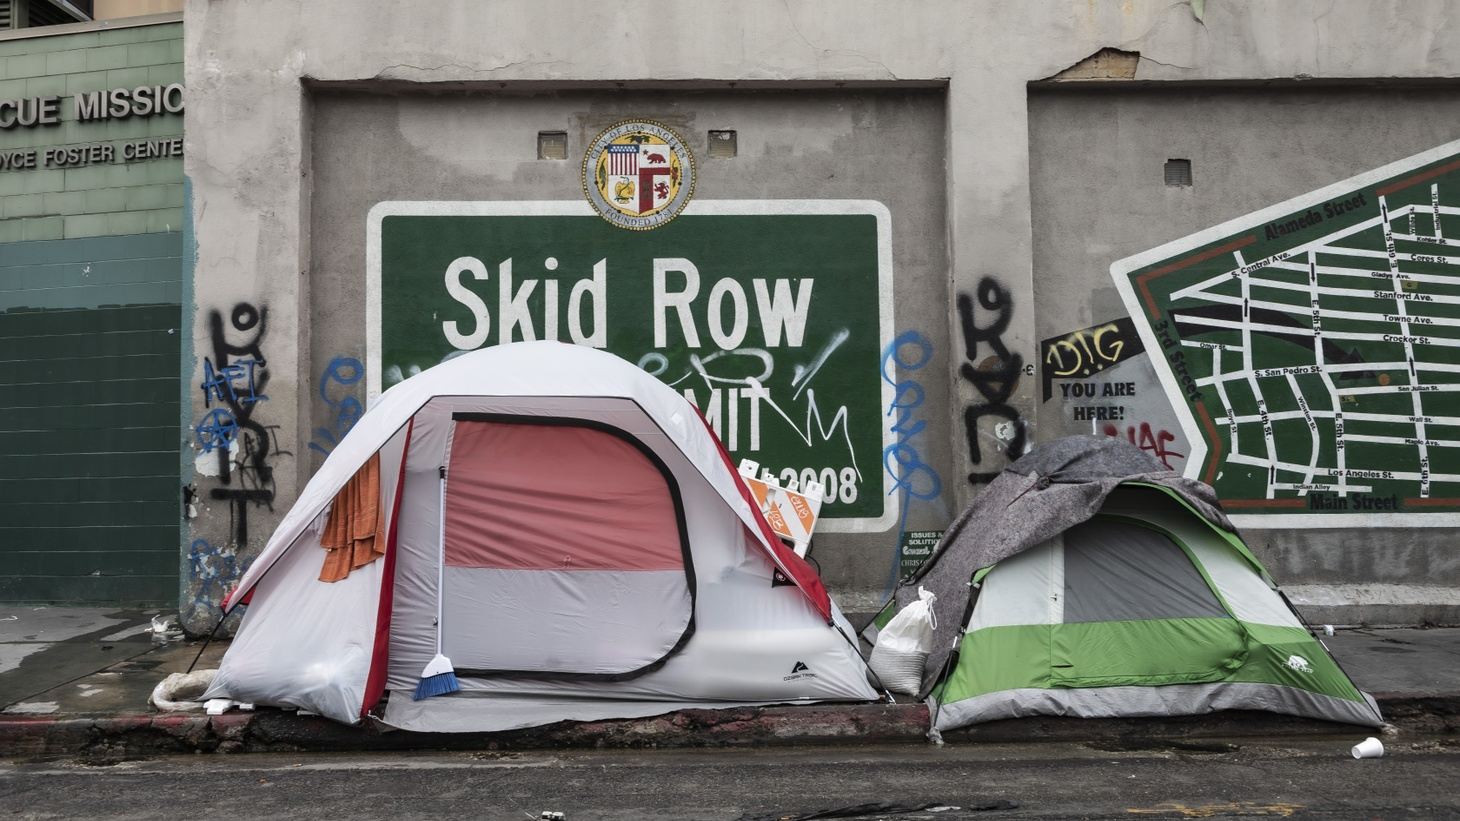 Skid Row in downtown Los Angeles has the city's largest population of unhoused people, April 6, 2020.